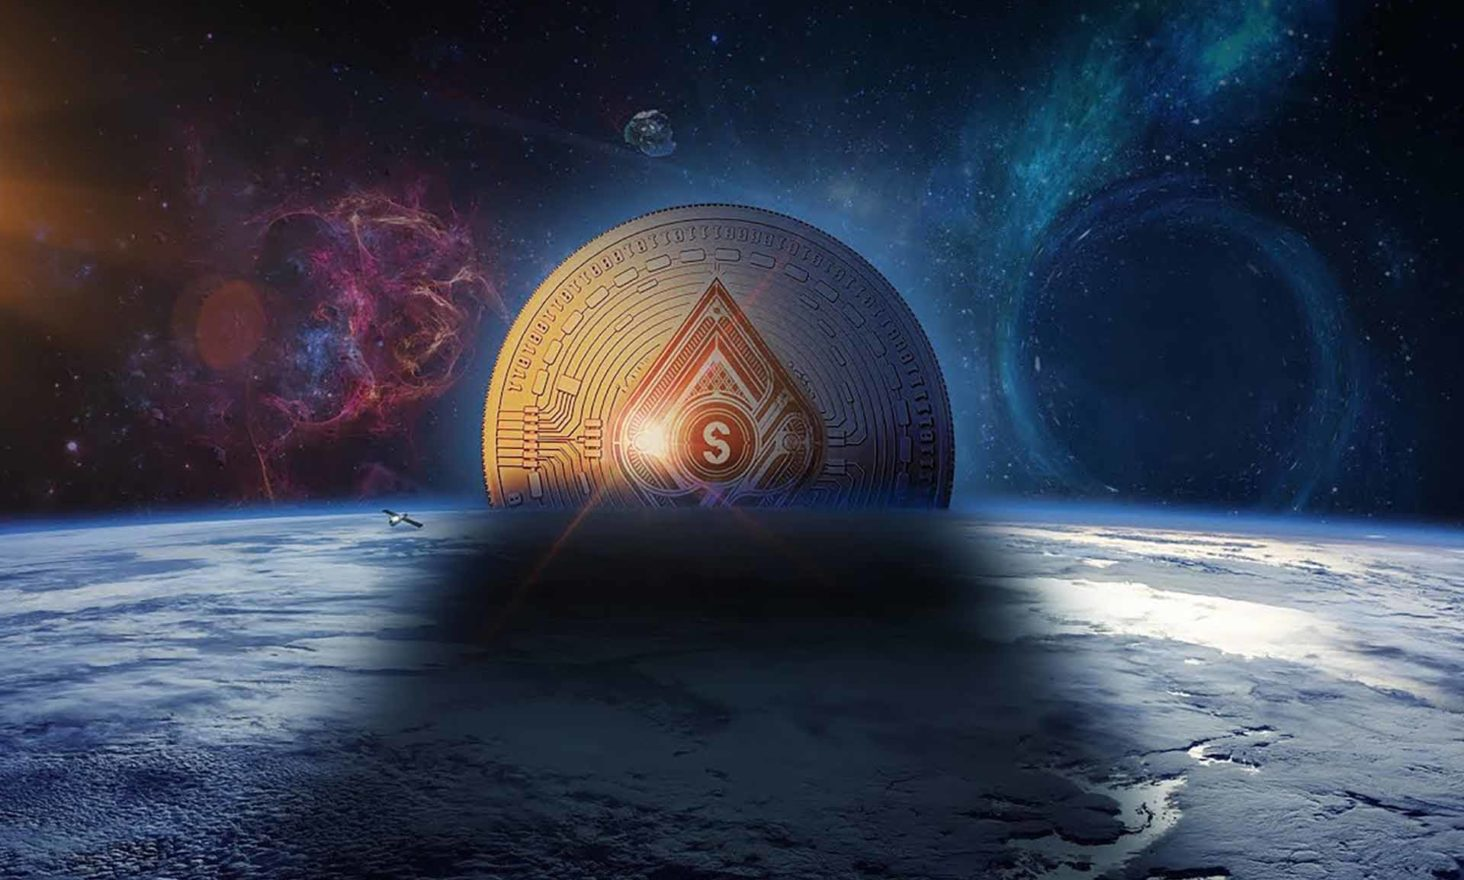 Sp8de Once Again Strikes Gold with the Addition of Two More Top Advisors